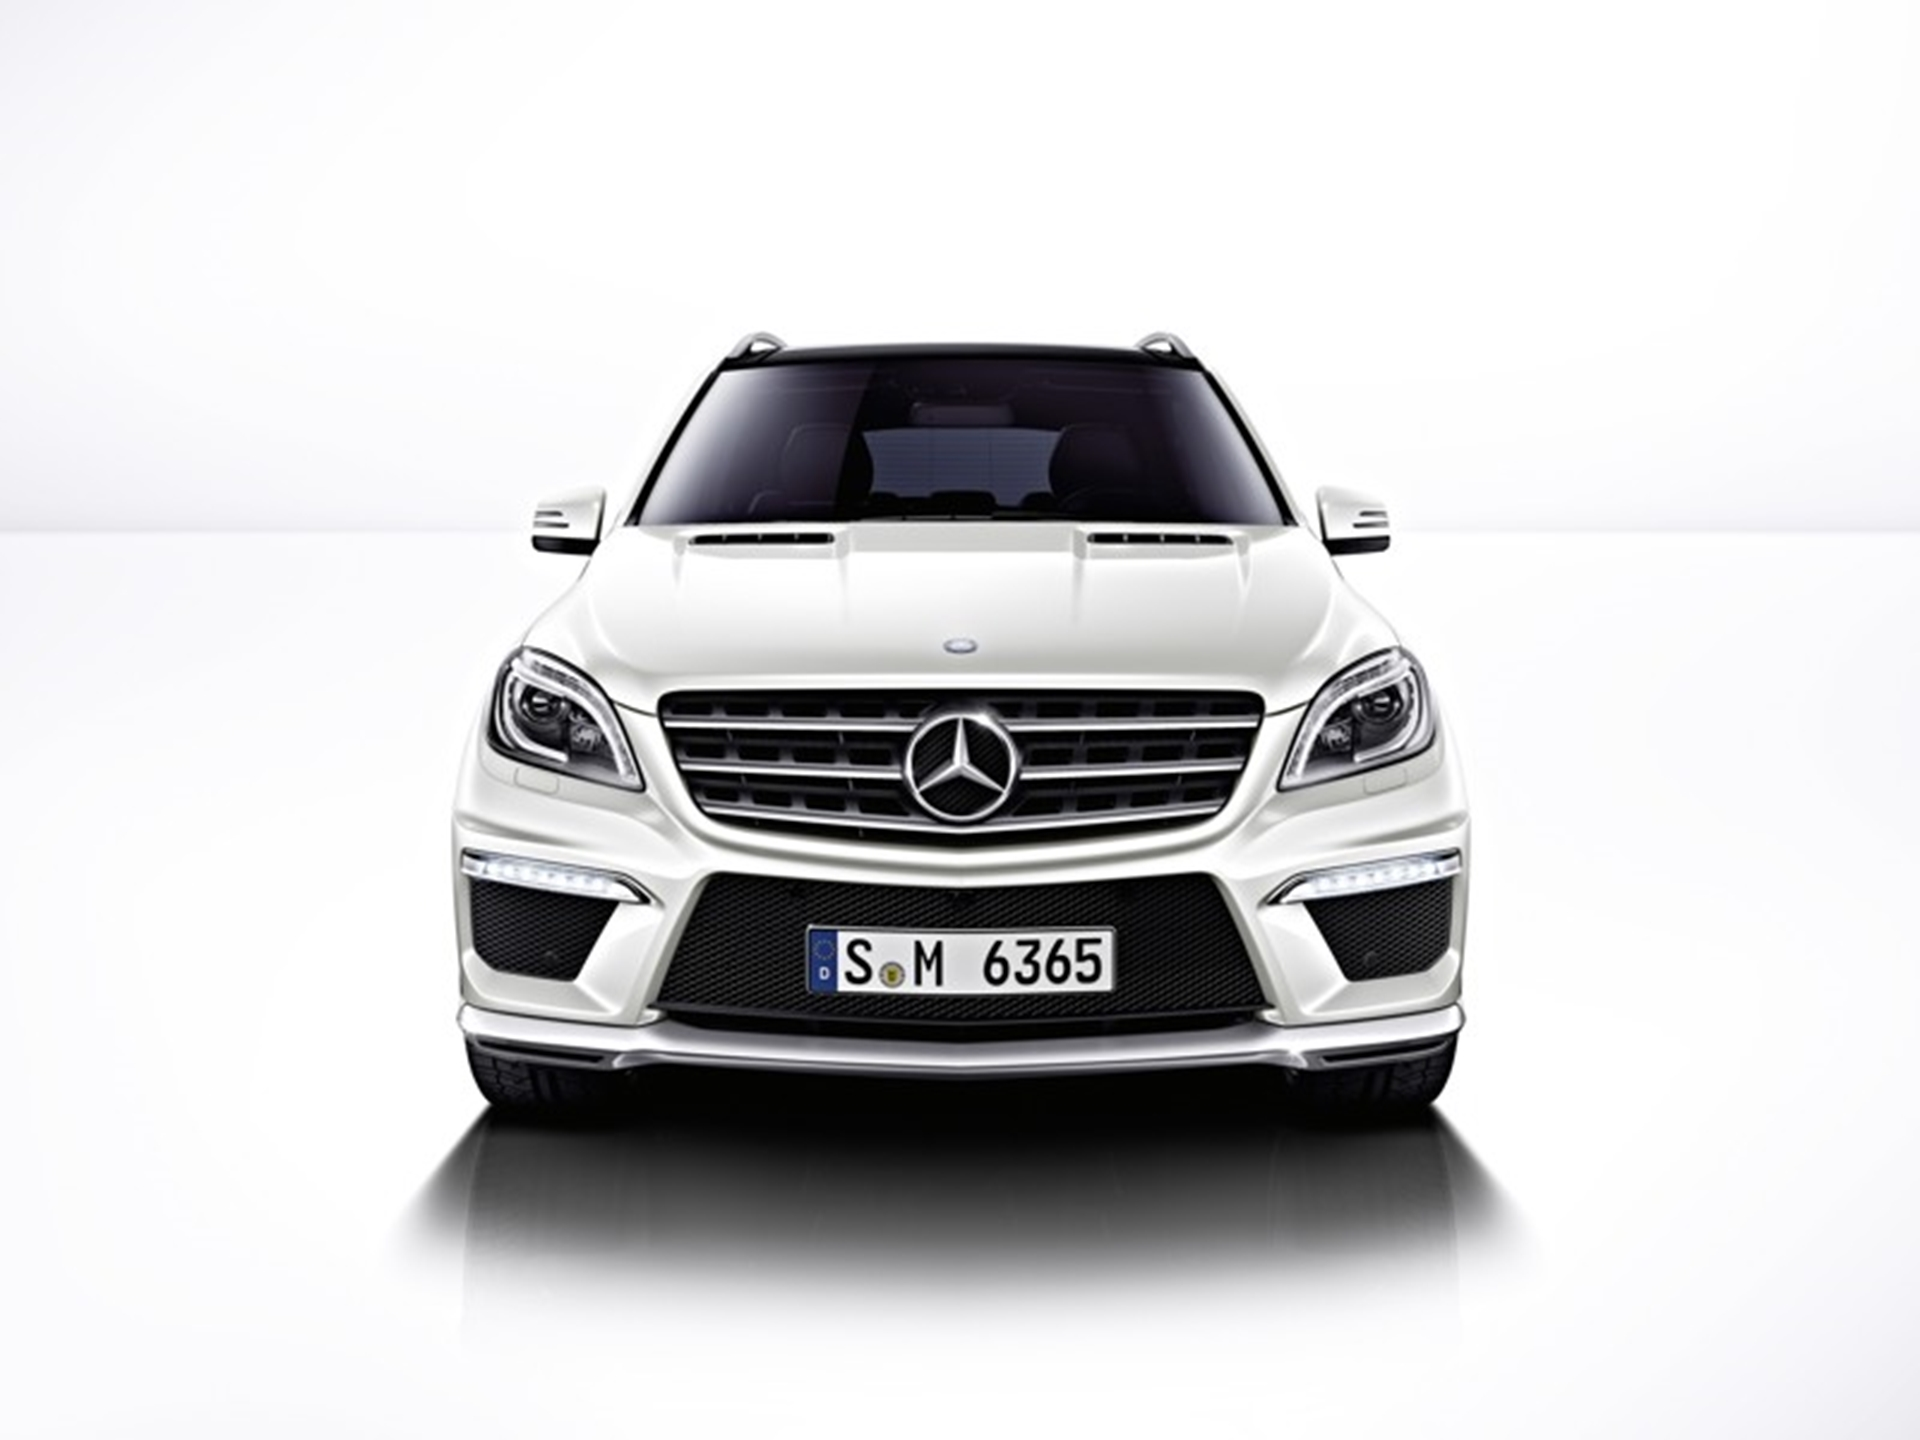 ML 63 Mercedes-Benz Front